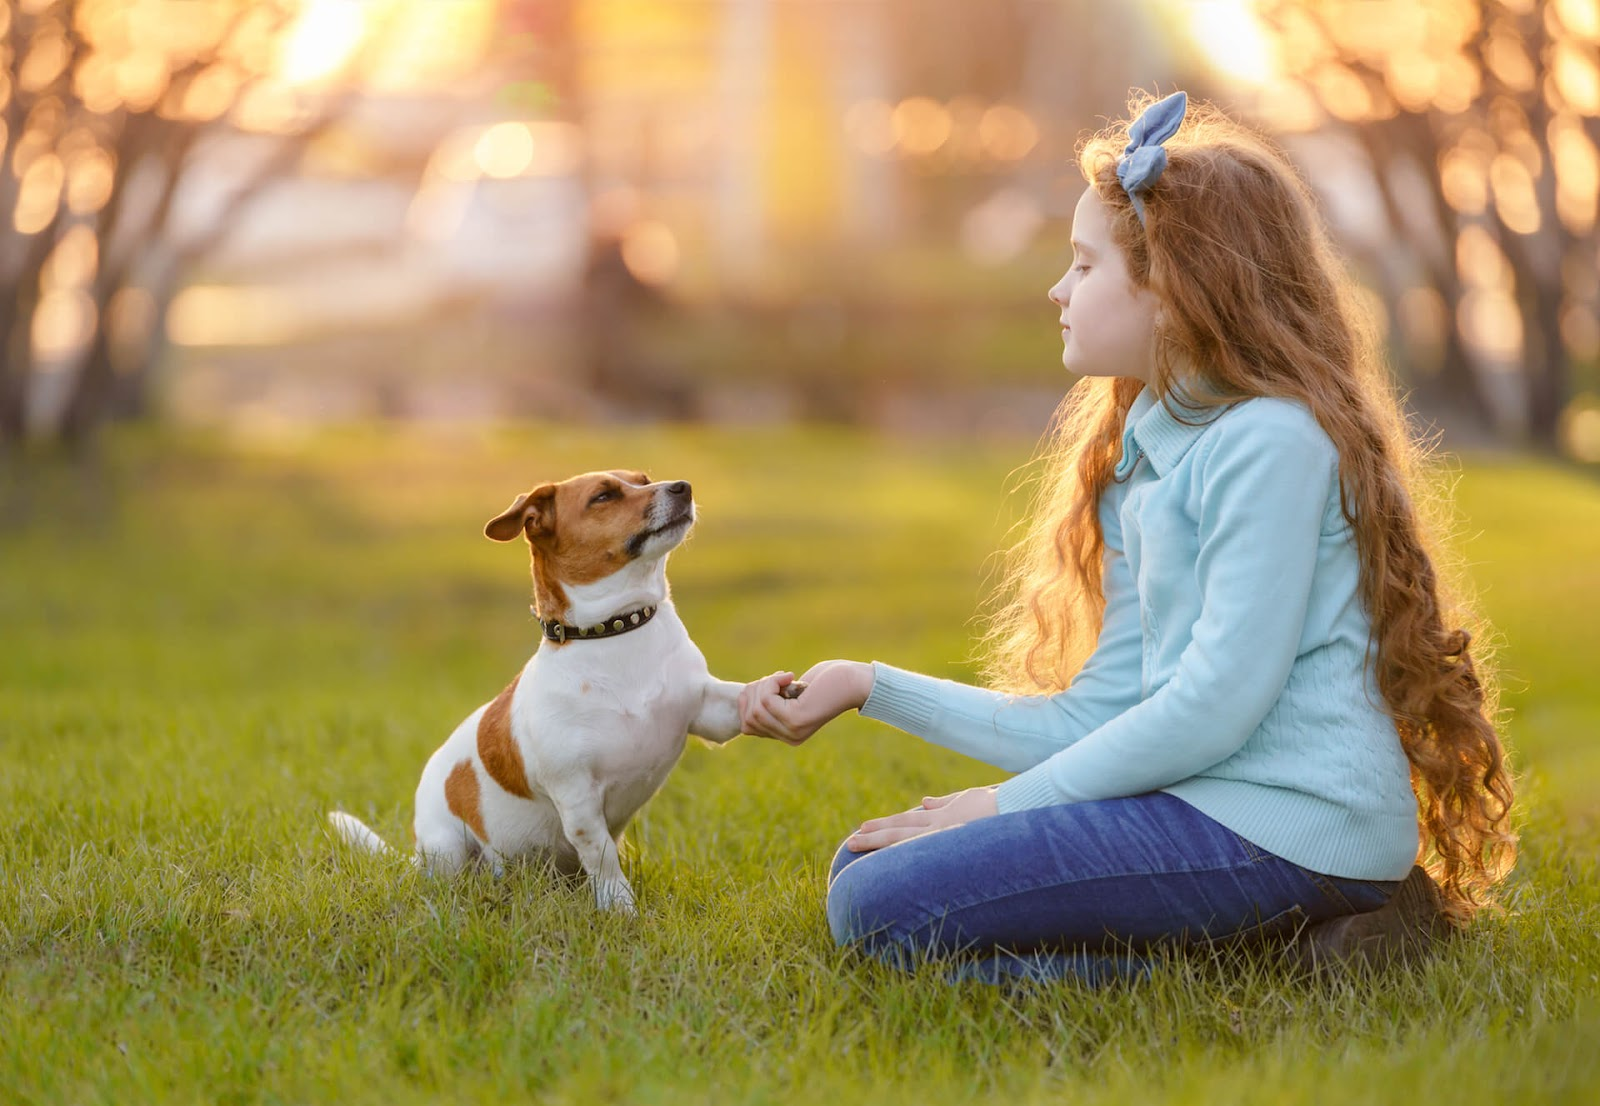 Girl playing with her small dog in a park